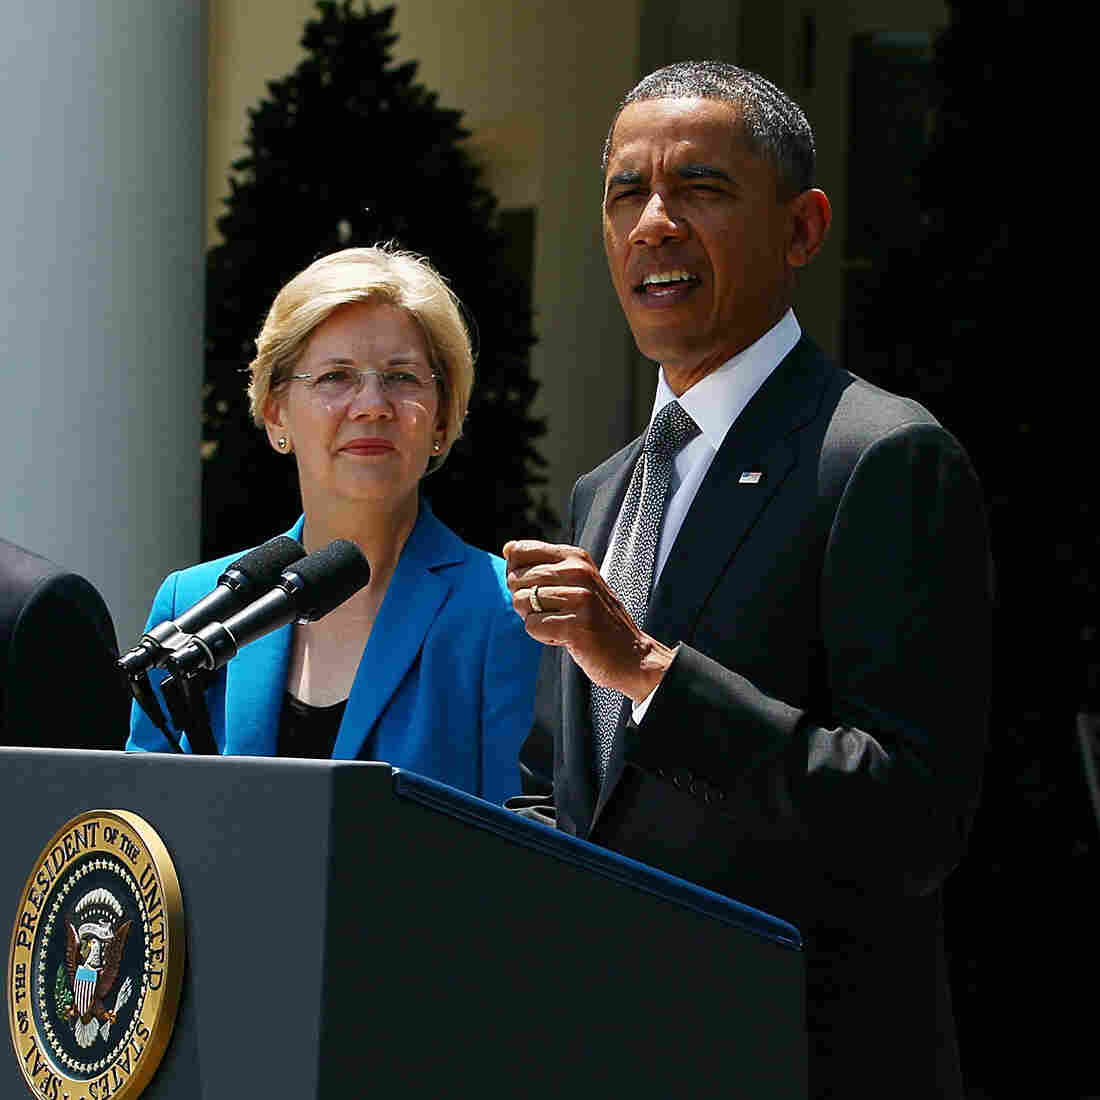 Sen. Warren On The 'Tilted Process' Of Asia Trade Bill